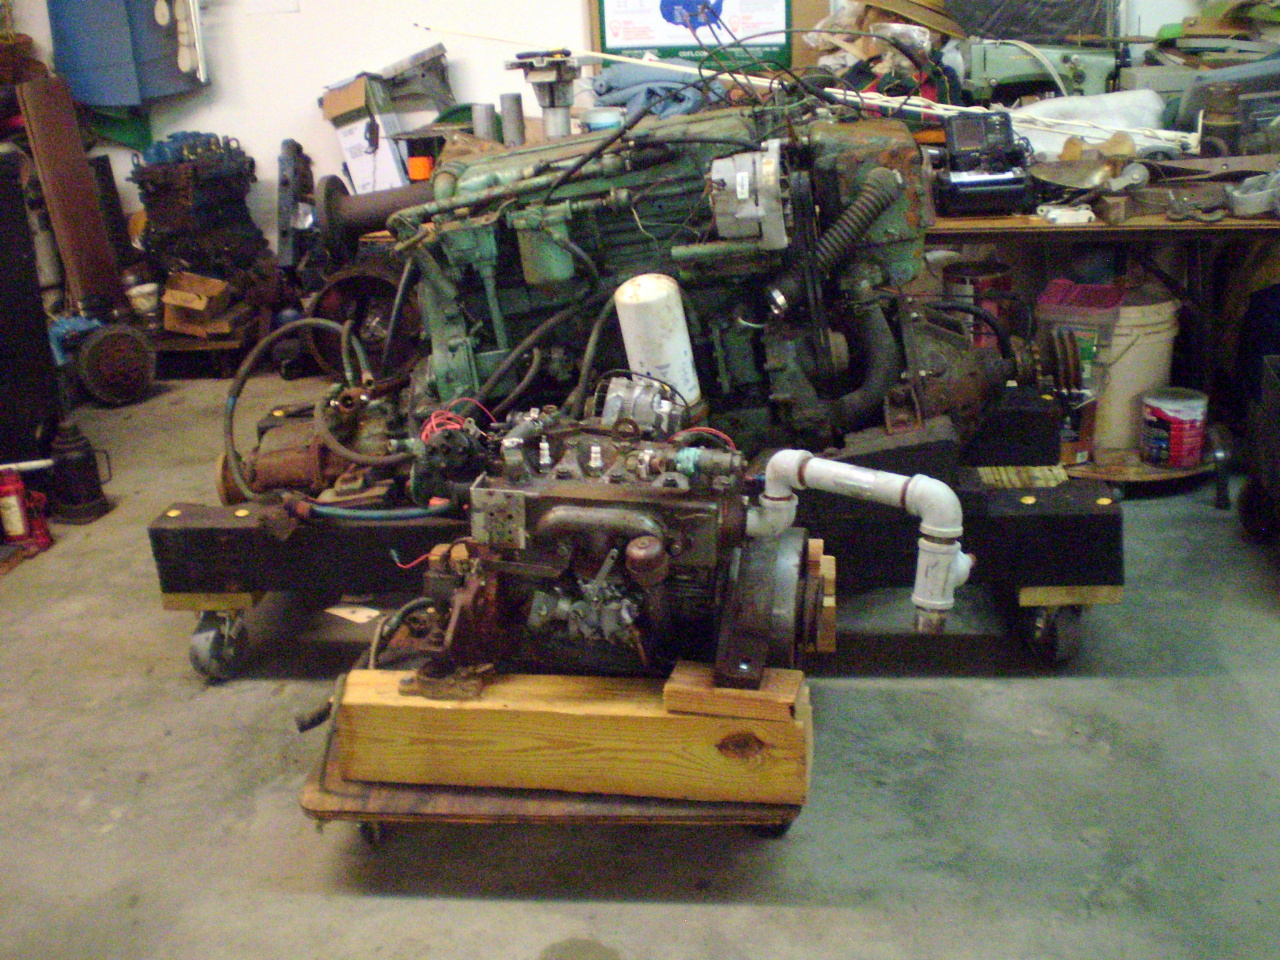 Do boat engines breed?-p5110003-jpg